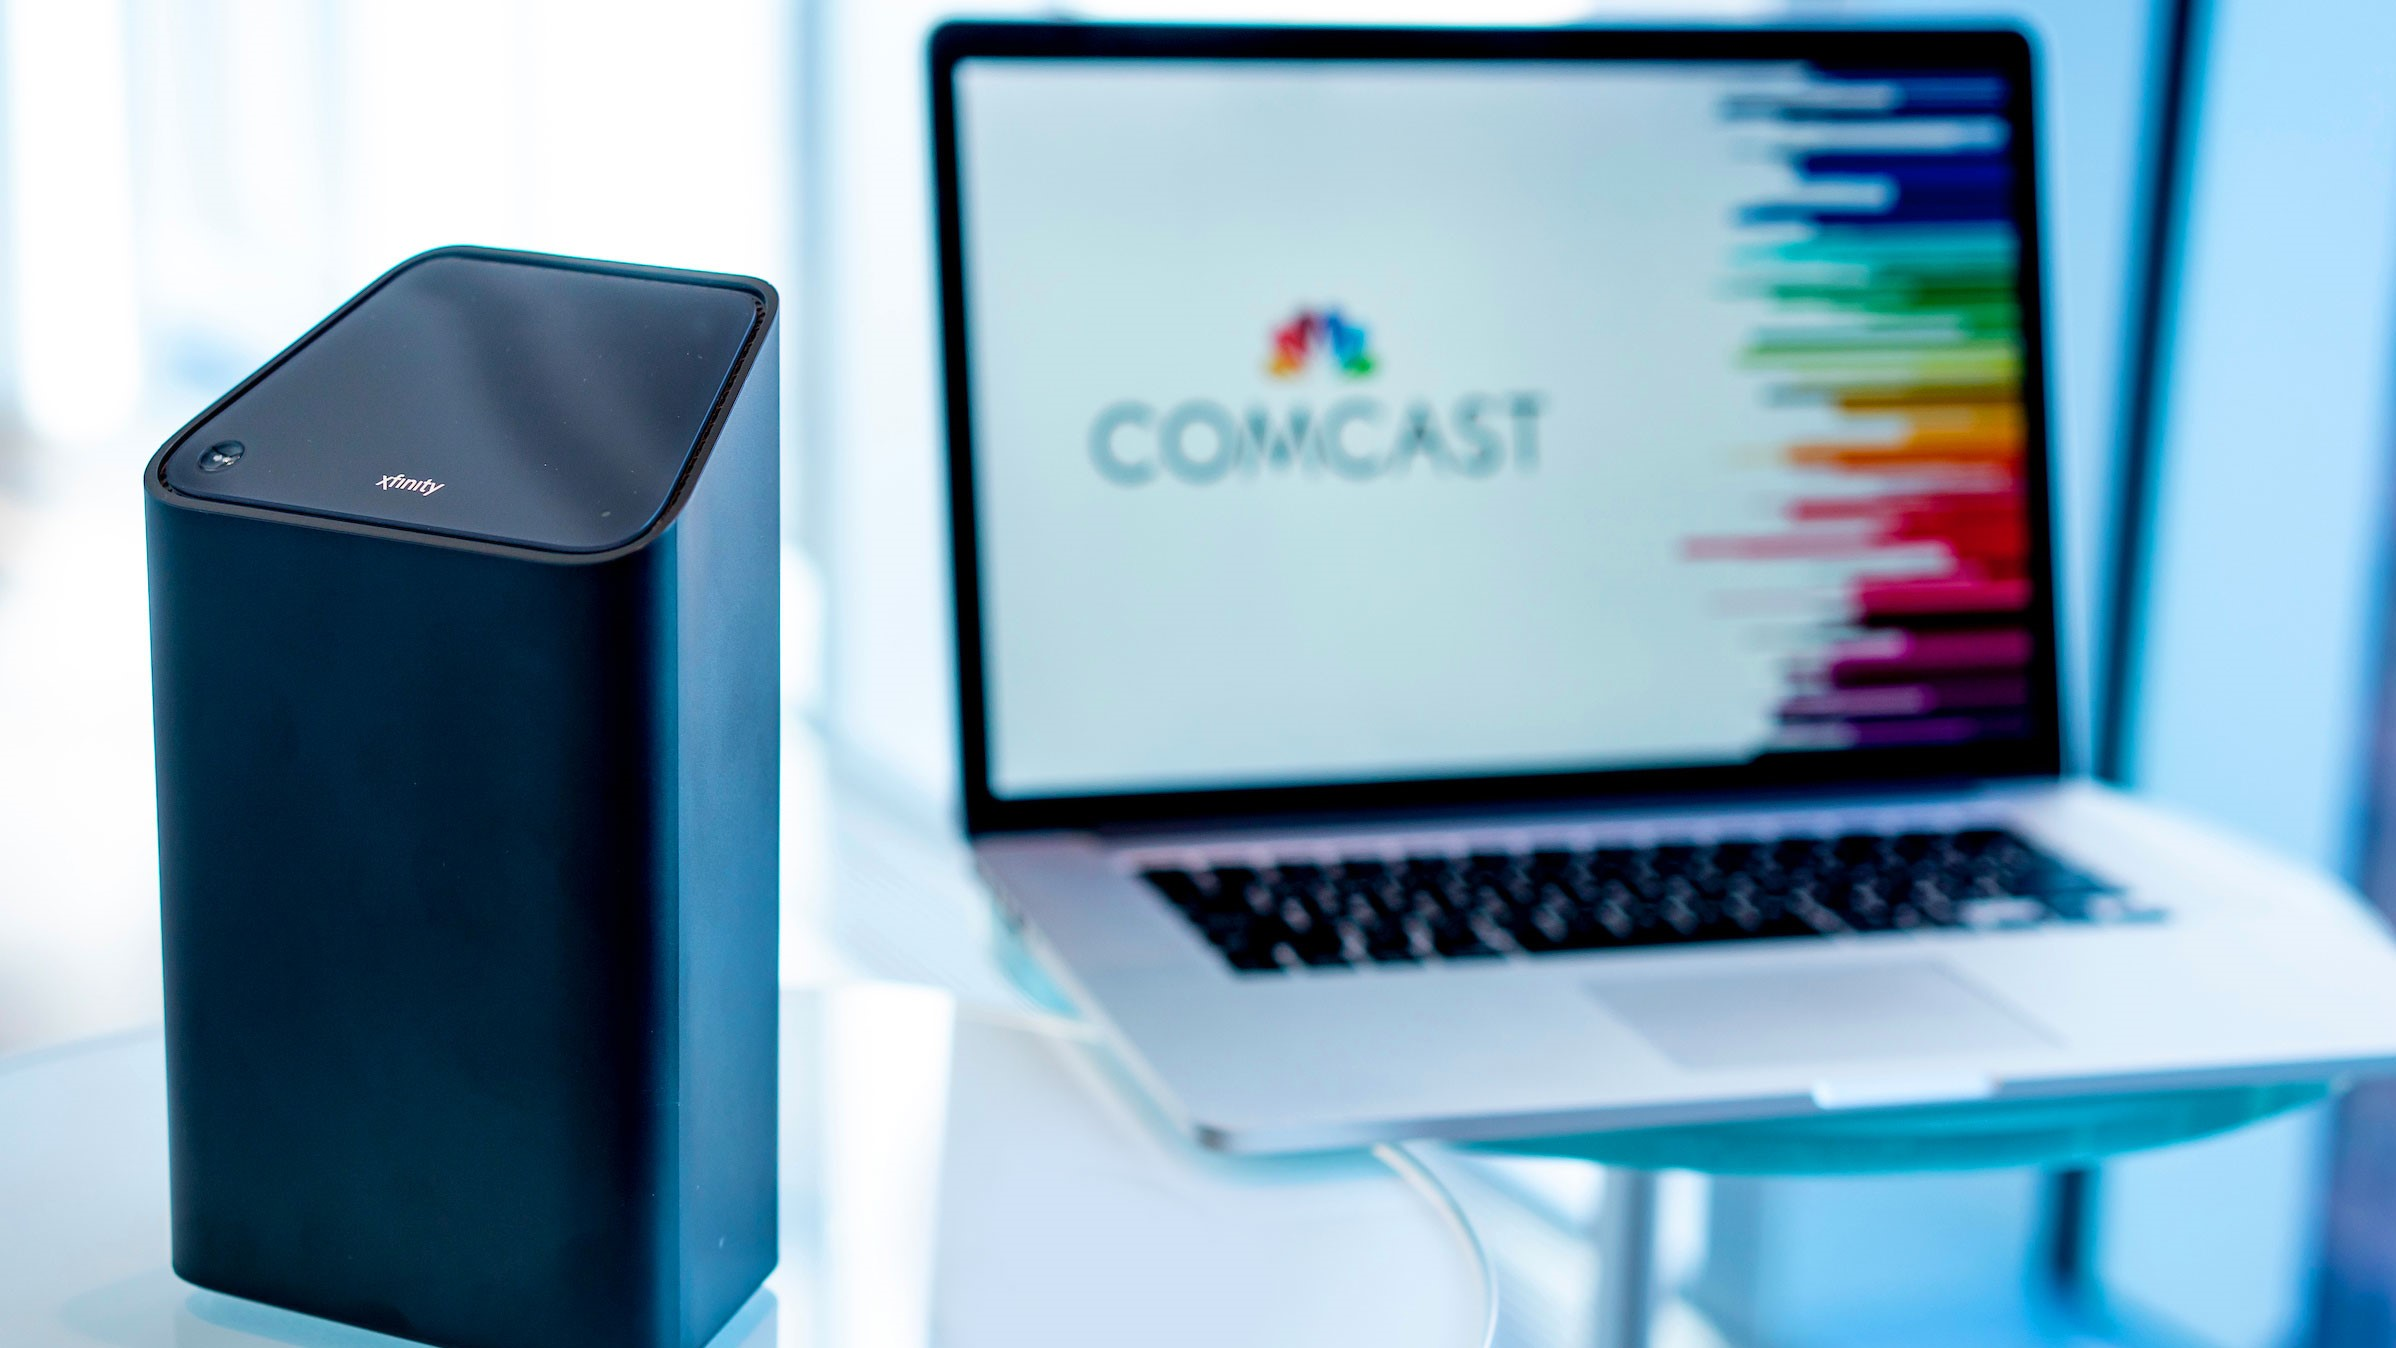 An Xfinity xFi Advanced Gateway and a laptop displaying the Comcast logo